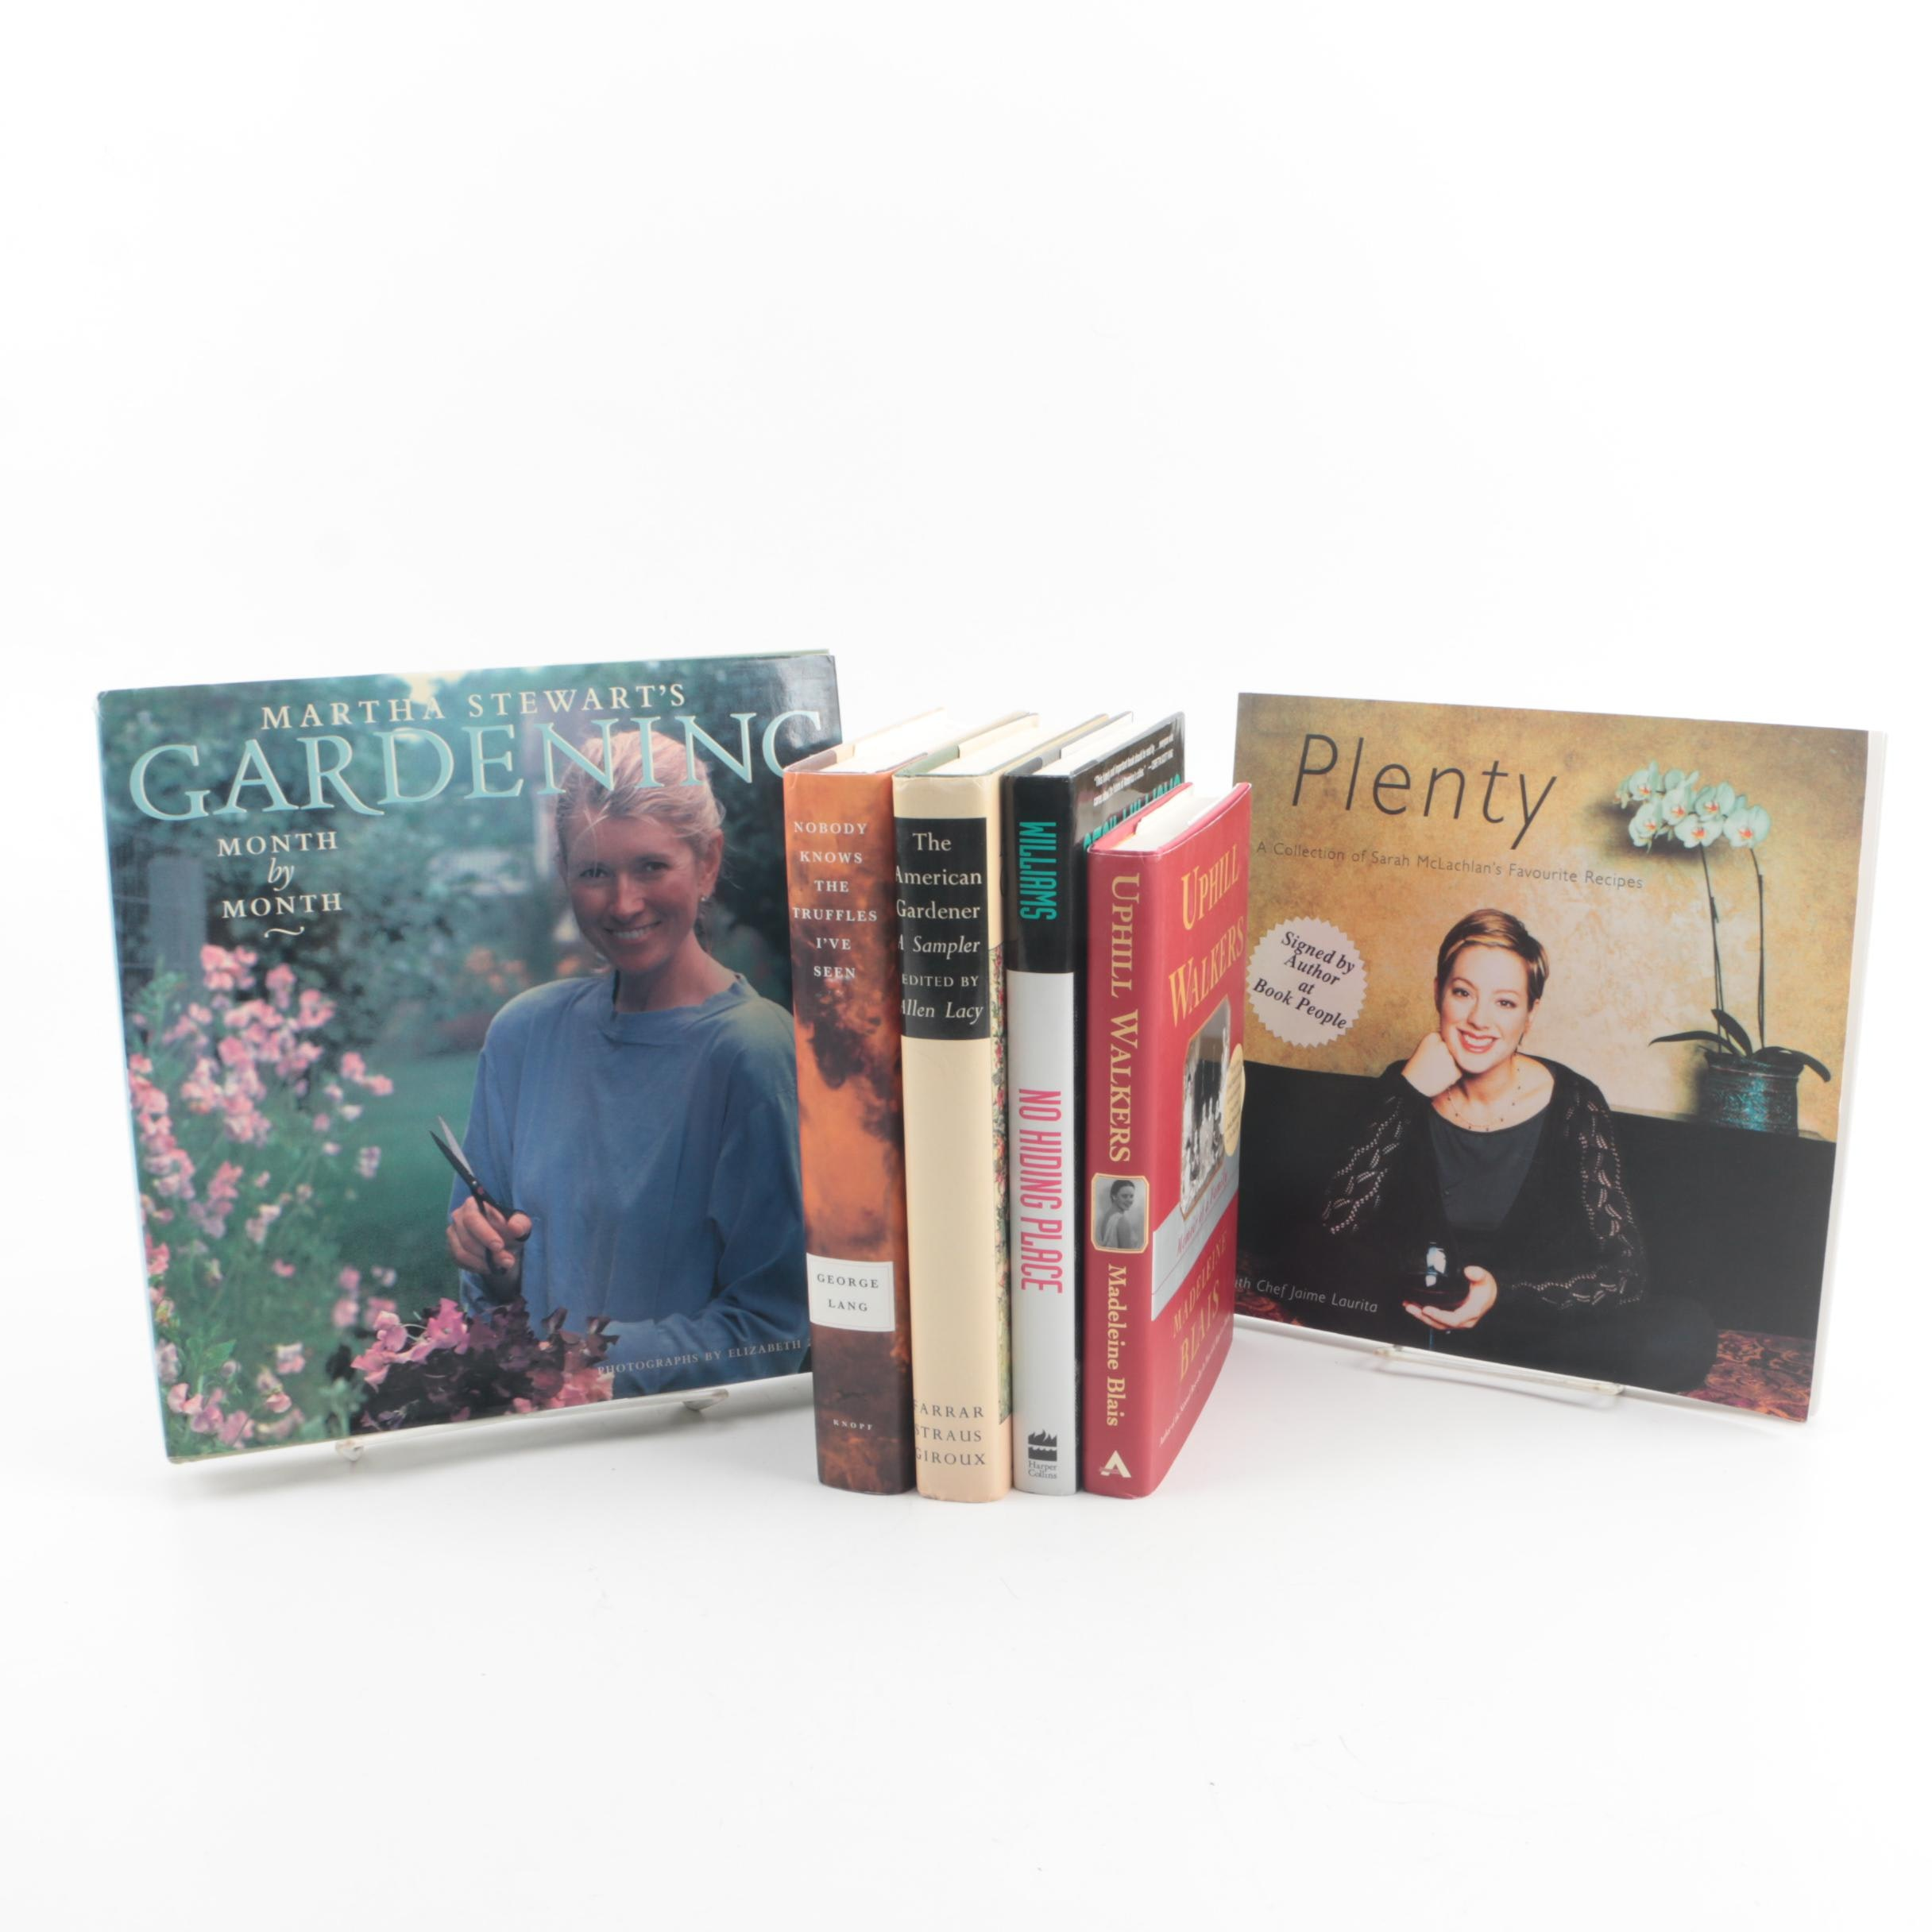 Signed Nonfiction and Gardening Books including Martha Stewart